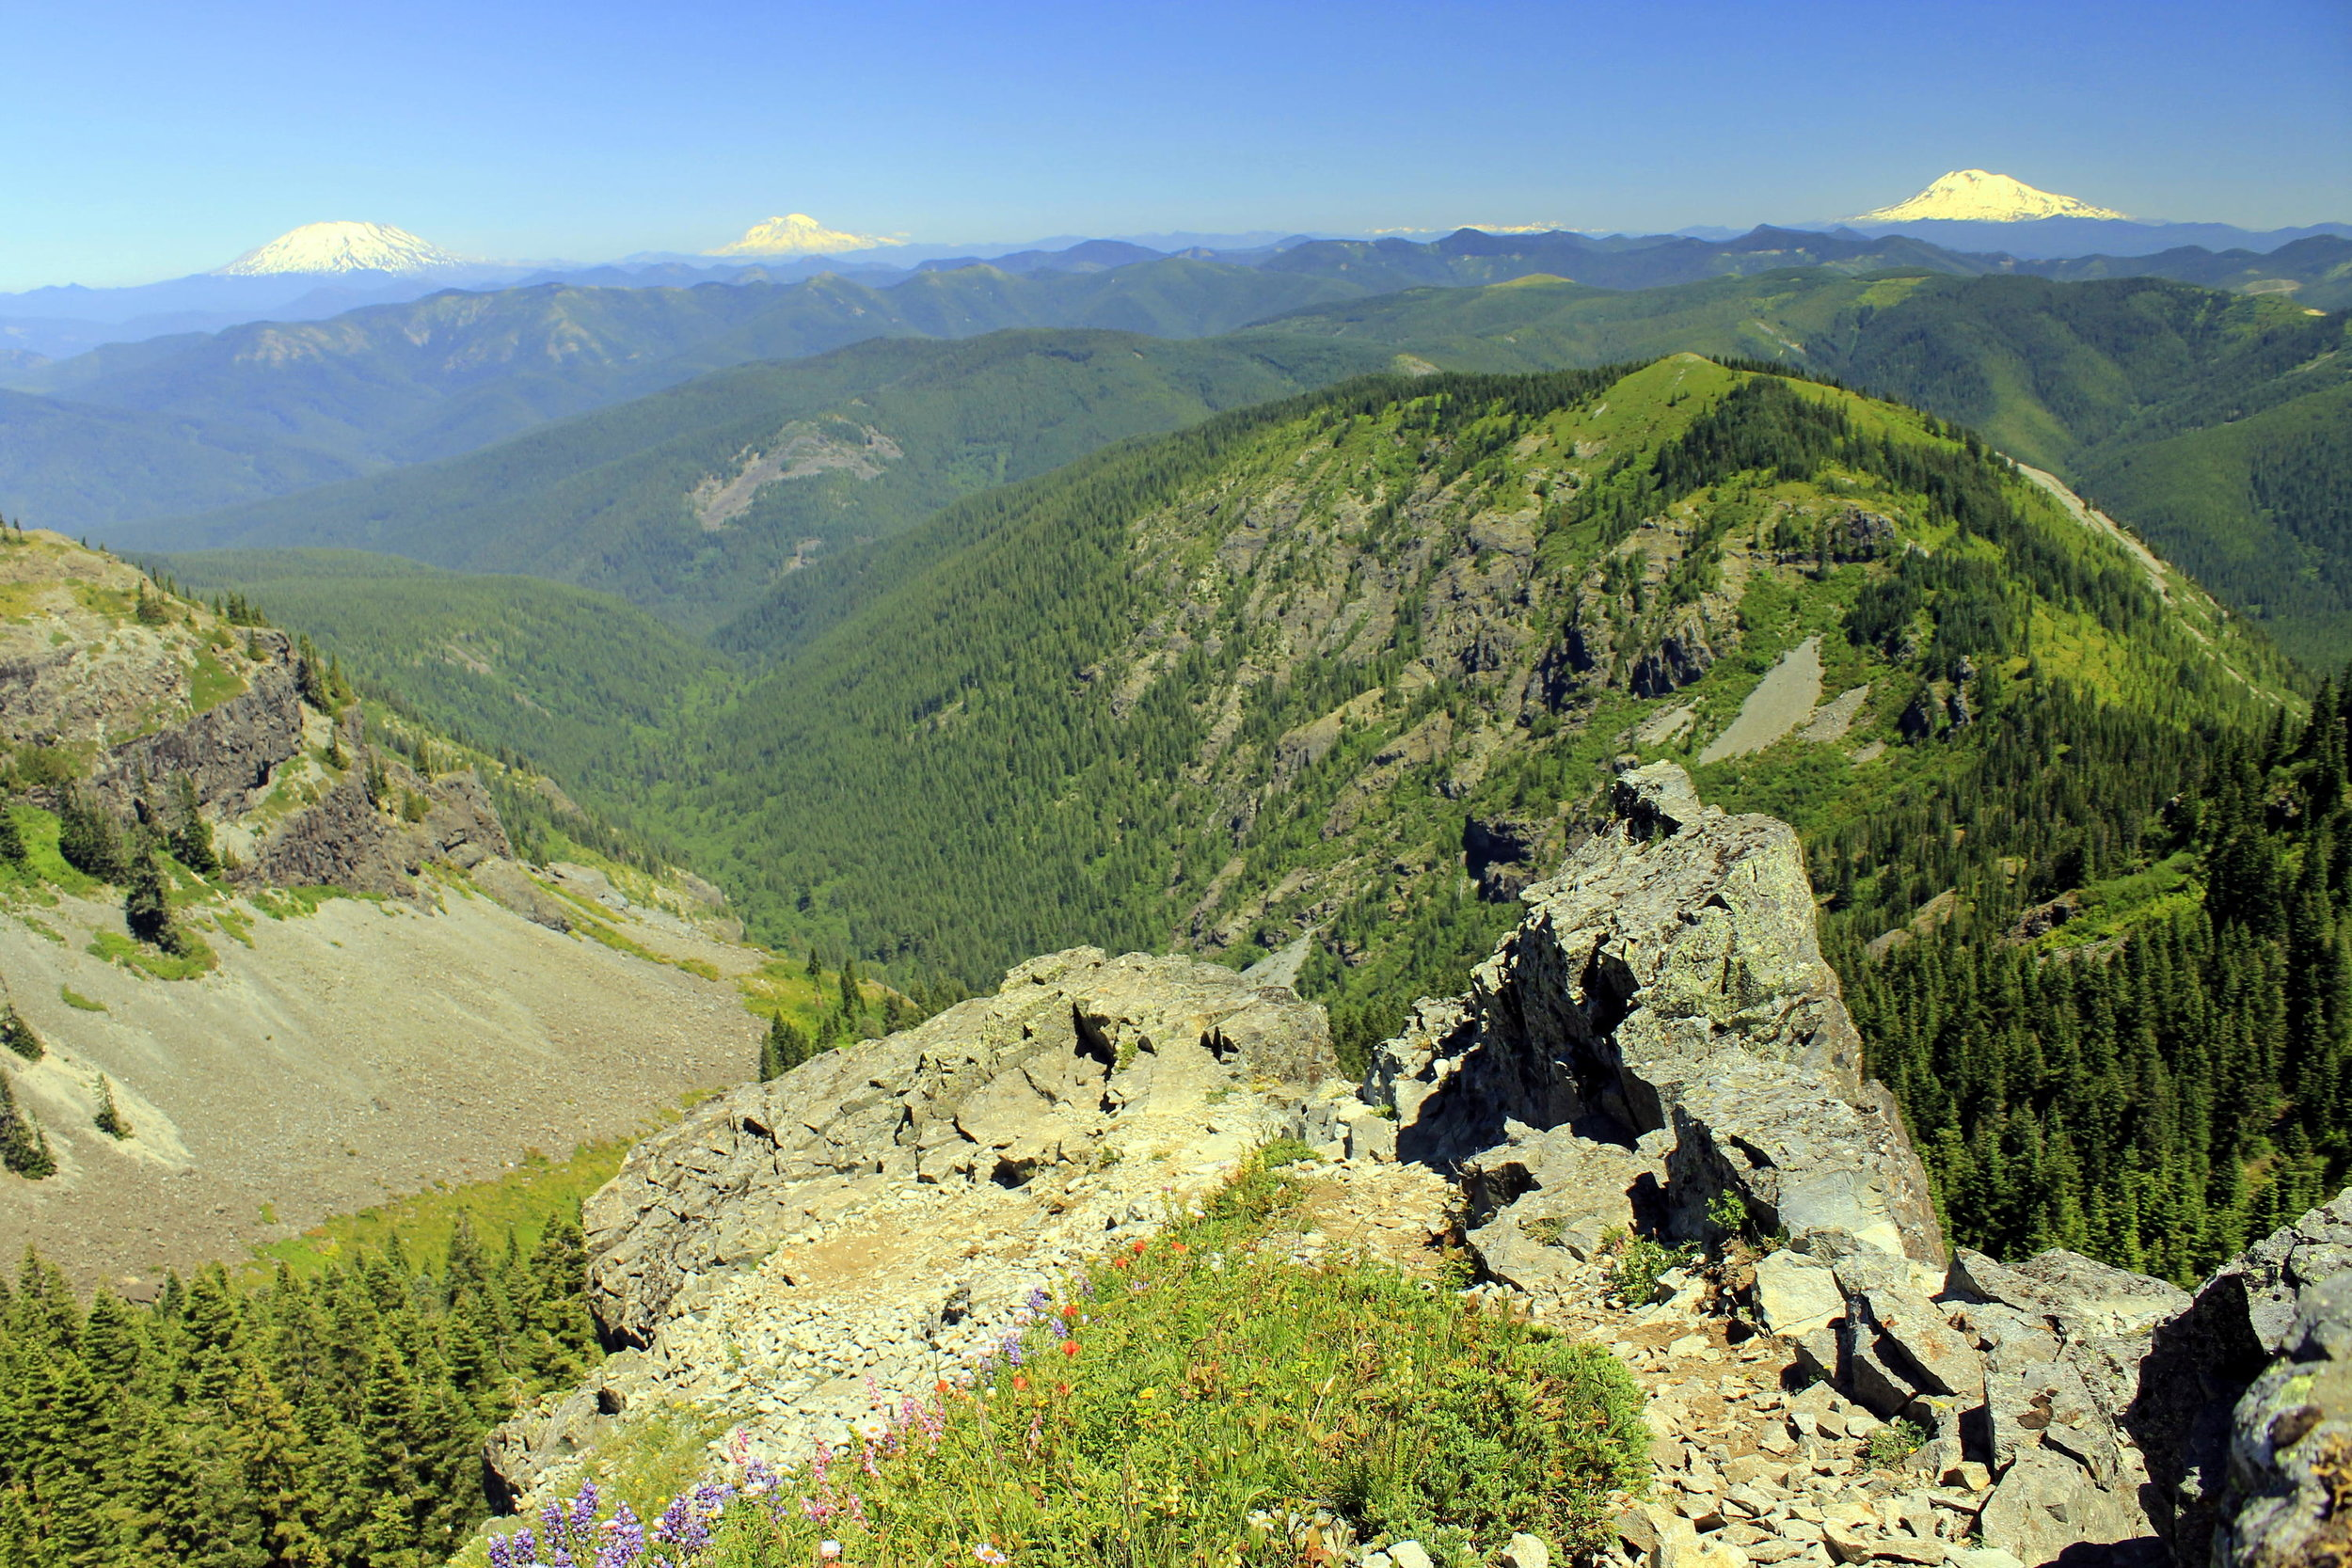 Hike 9: Silver Star Mountain via Starway